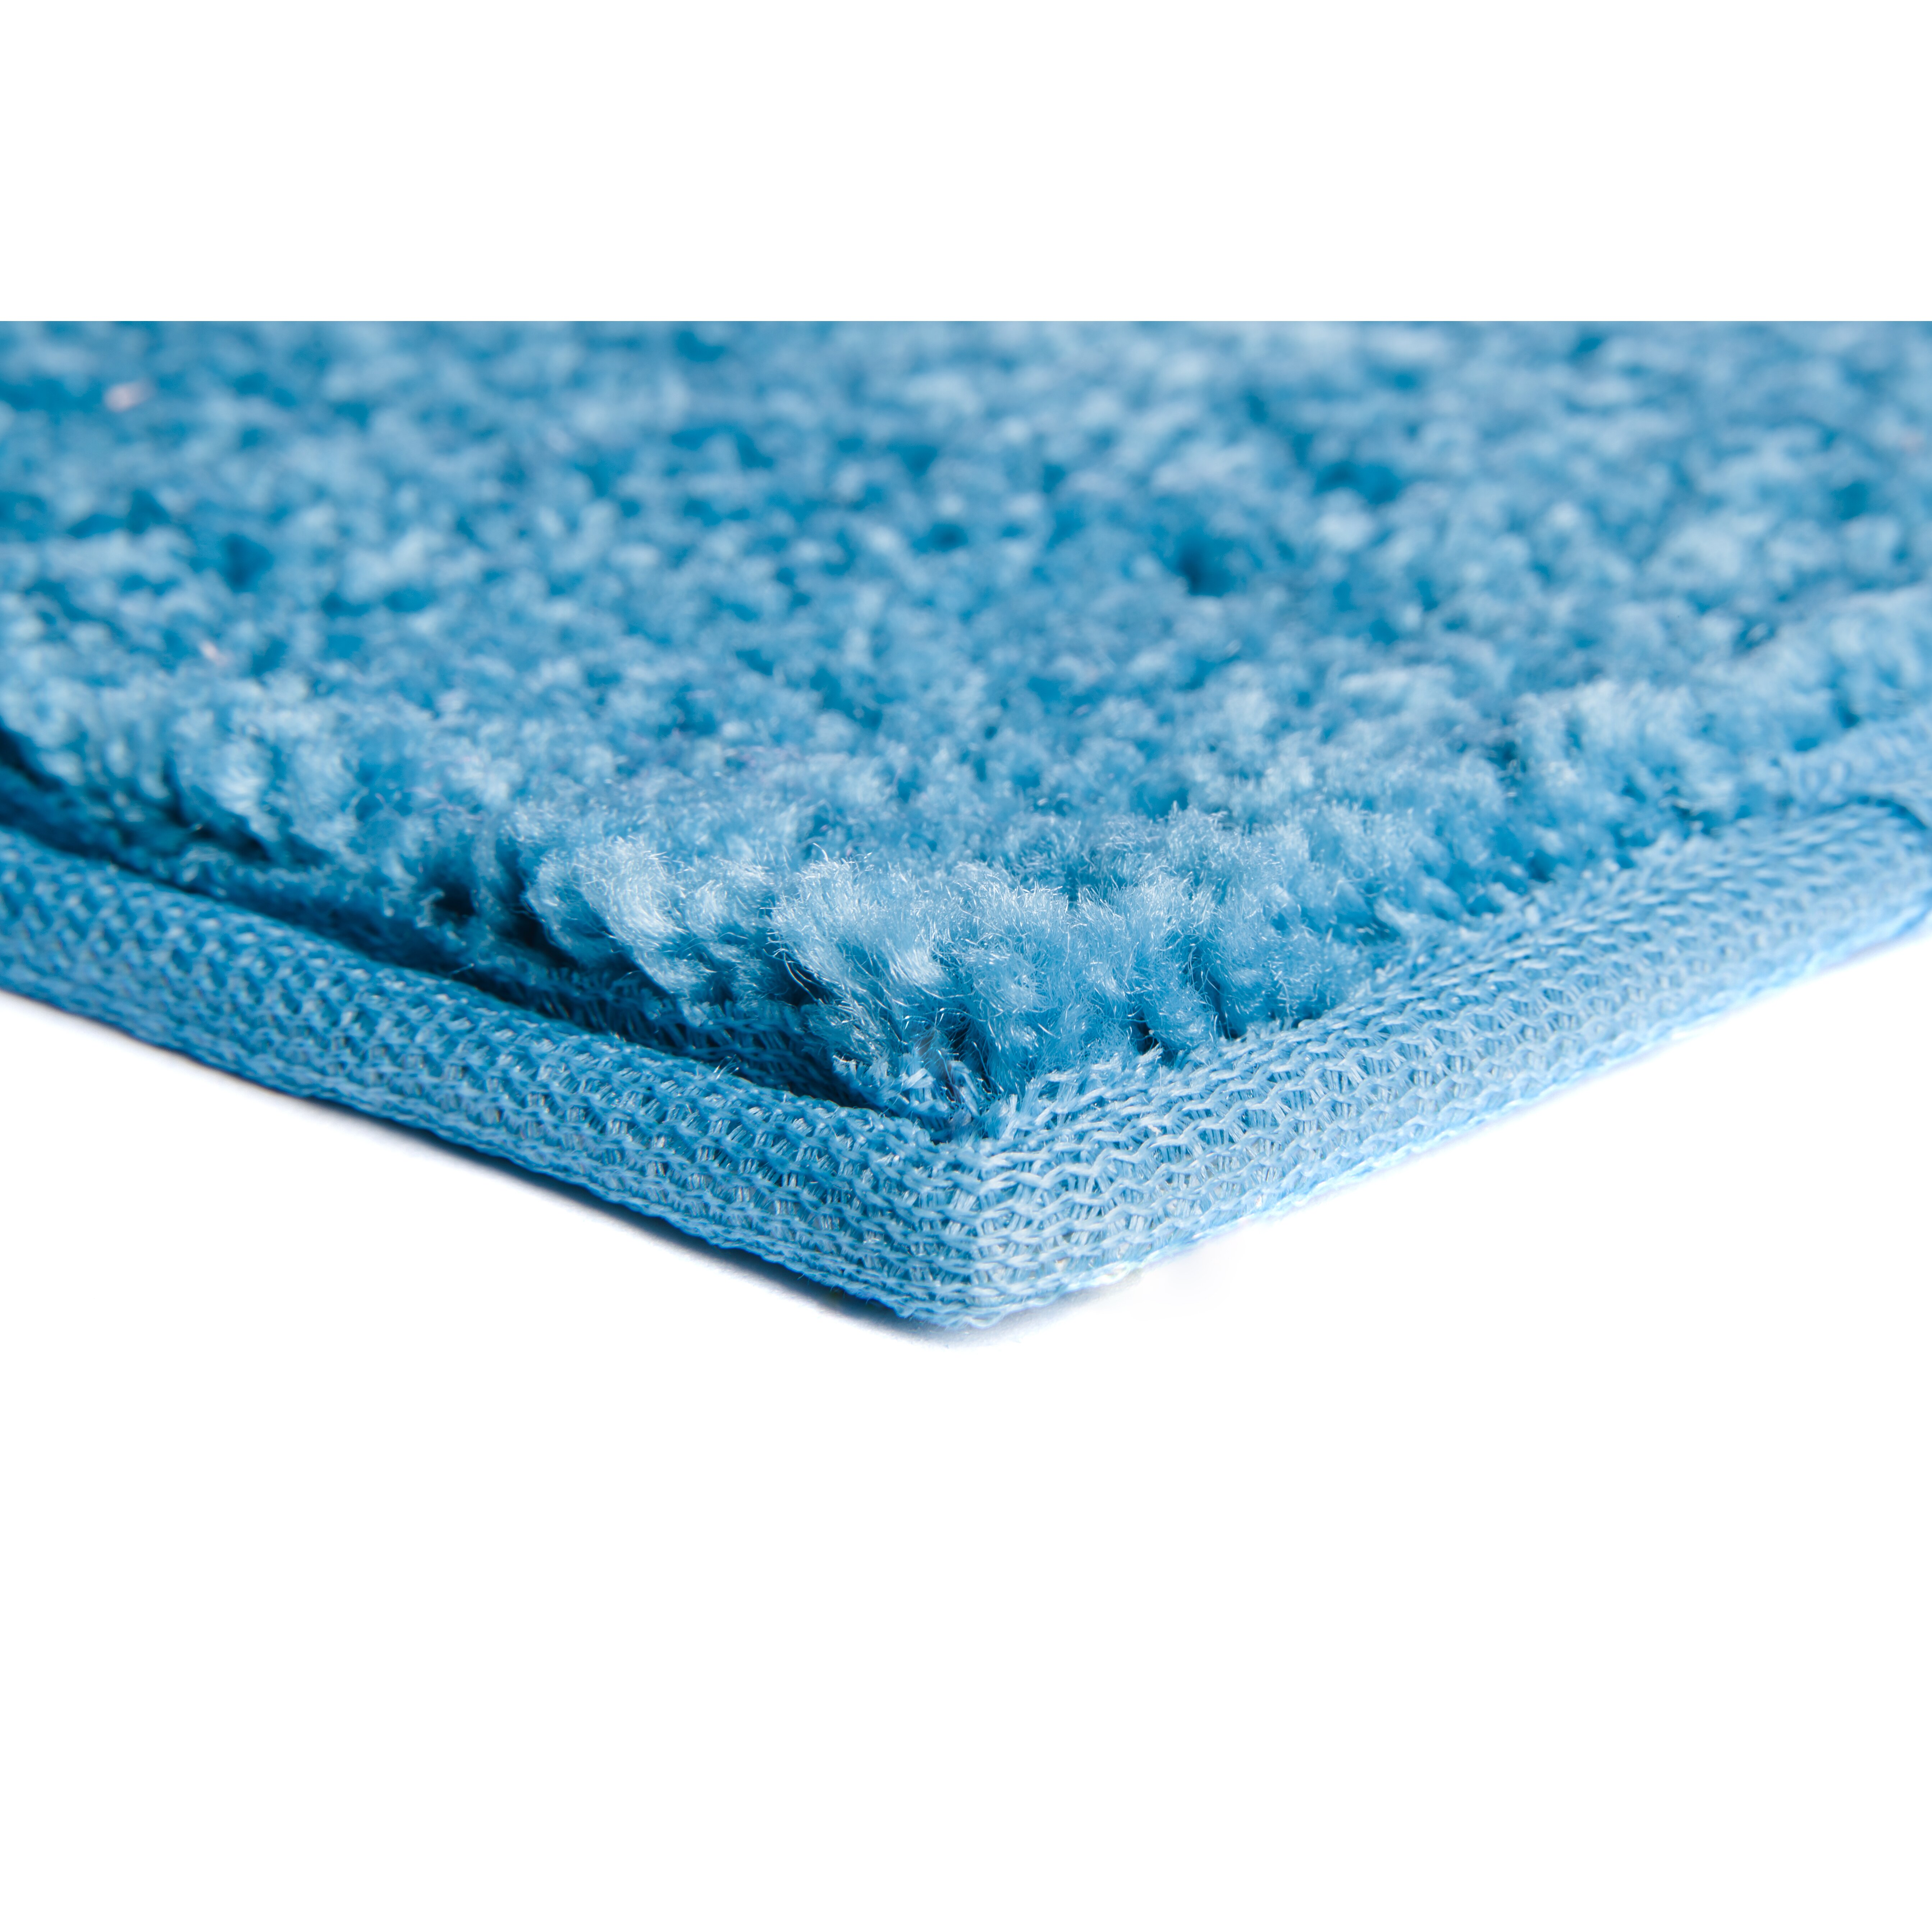 Nance industries ourspace bright royal sky blue area rug for Bright blue area rug